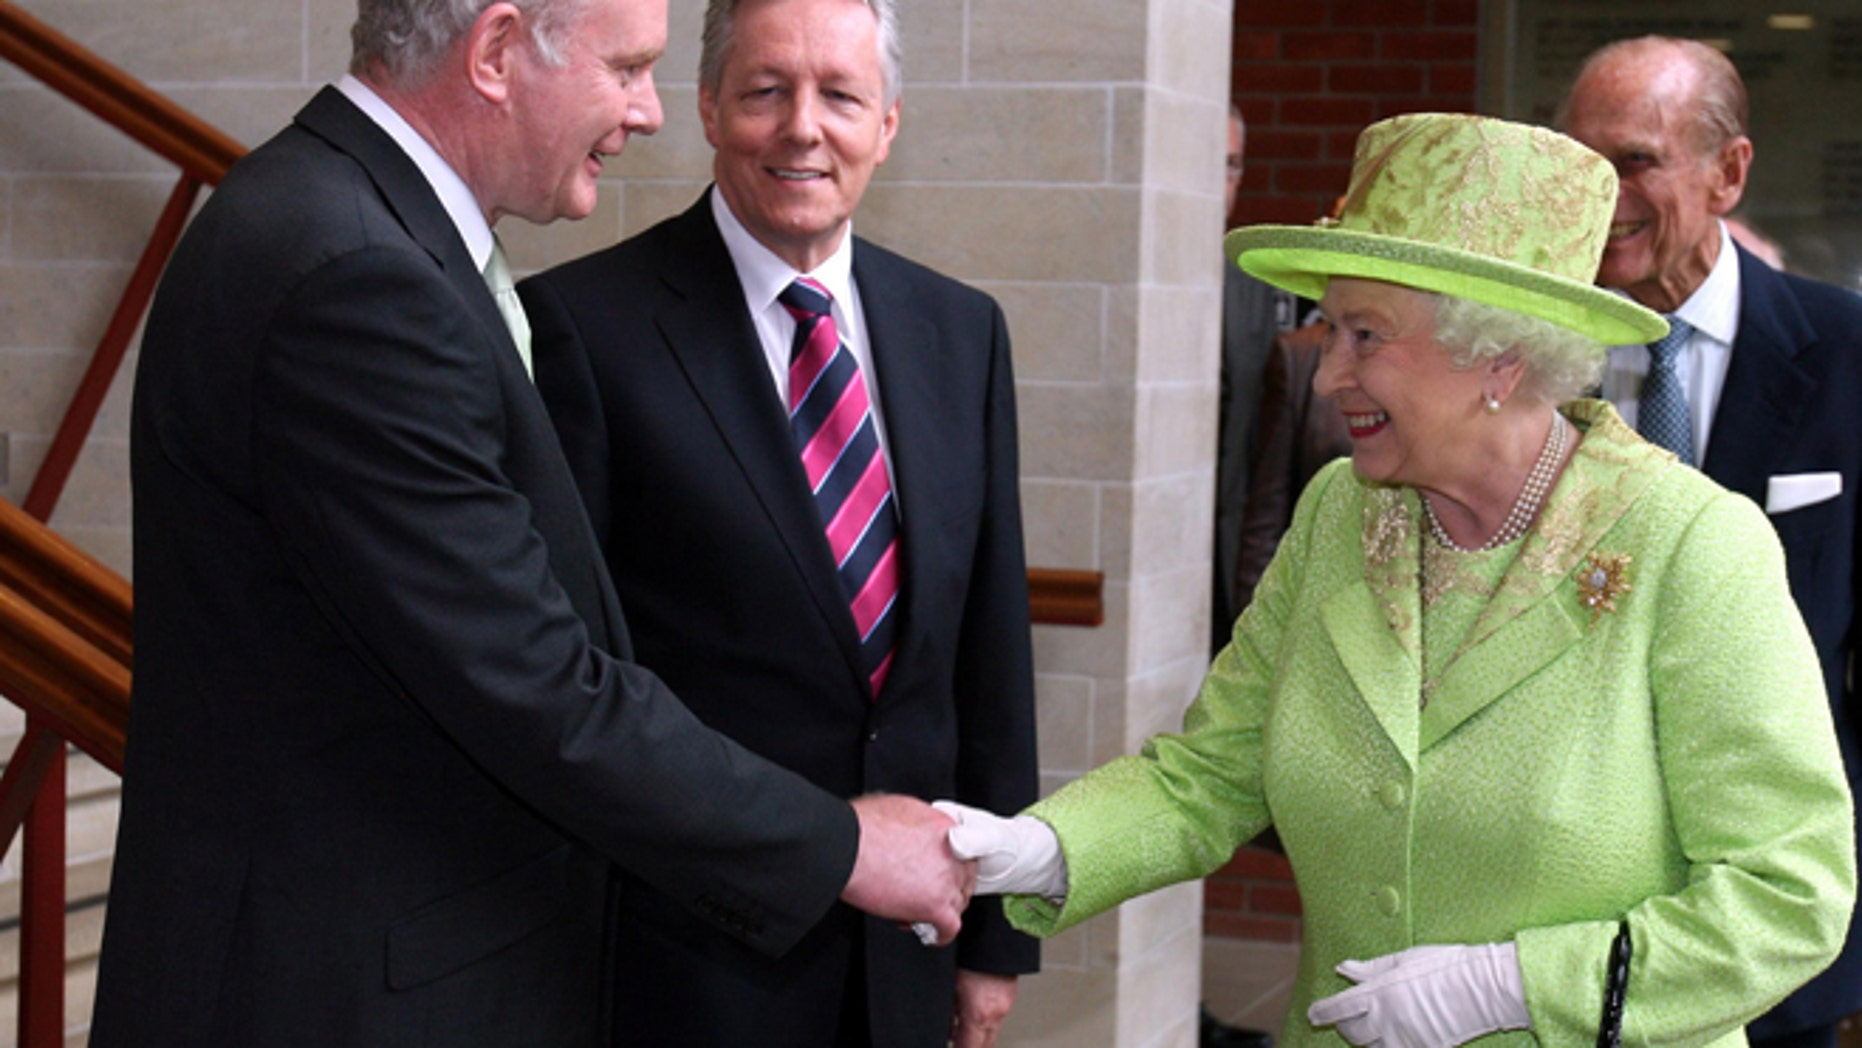 June 27, 2012: Britain's Queen Elizabeth II shakes hands with Northern Ireland Deputy First Minister and former IRA commander Martin McGuinness watched by First minister Peter Robinson, centre, at the Lyric Theatre in Belfast, Northern Ireland.